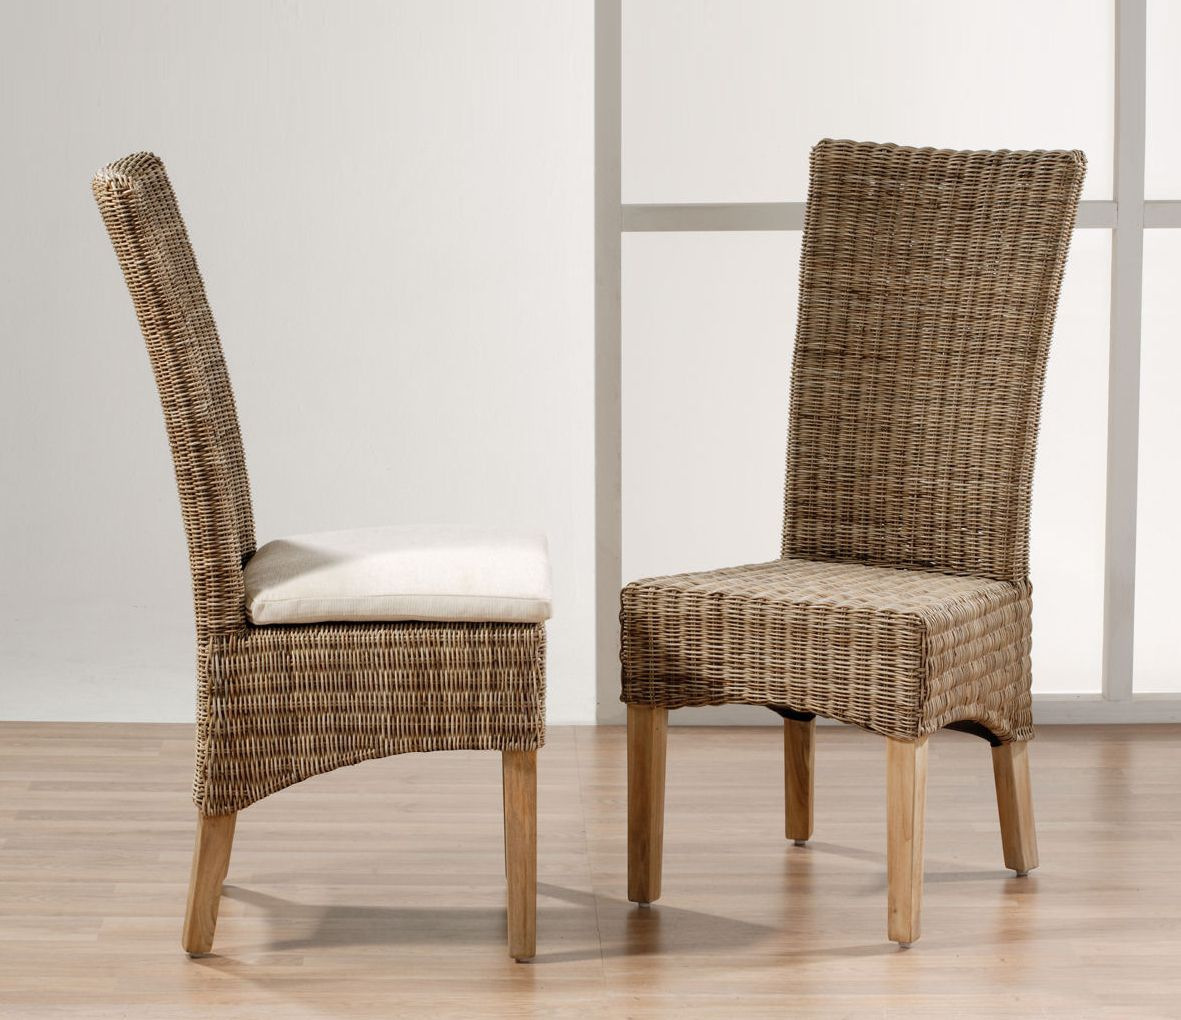 Rattan Chairs Wicker Dining Chairs Rattan Dining Chairs Wicker